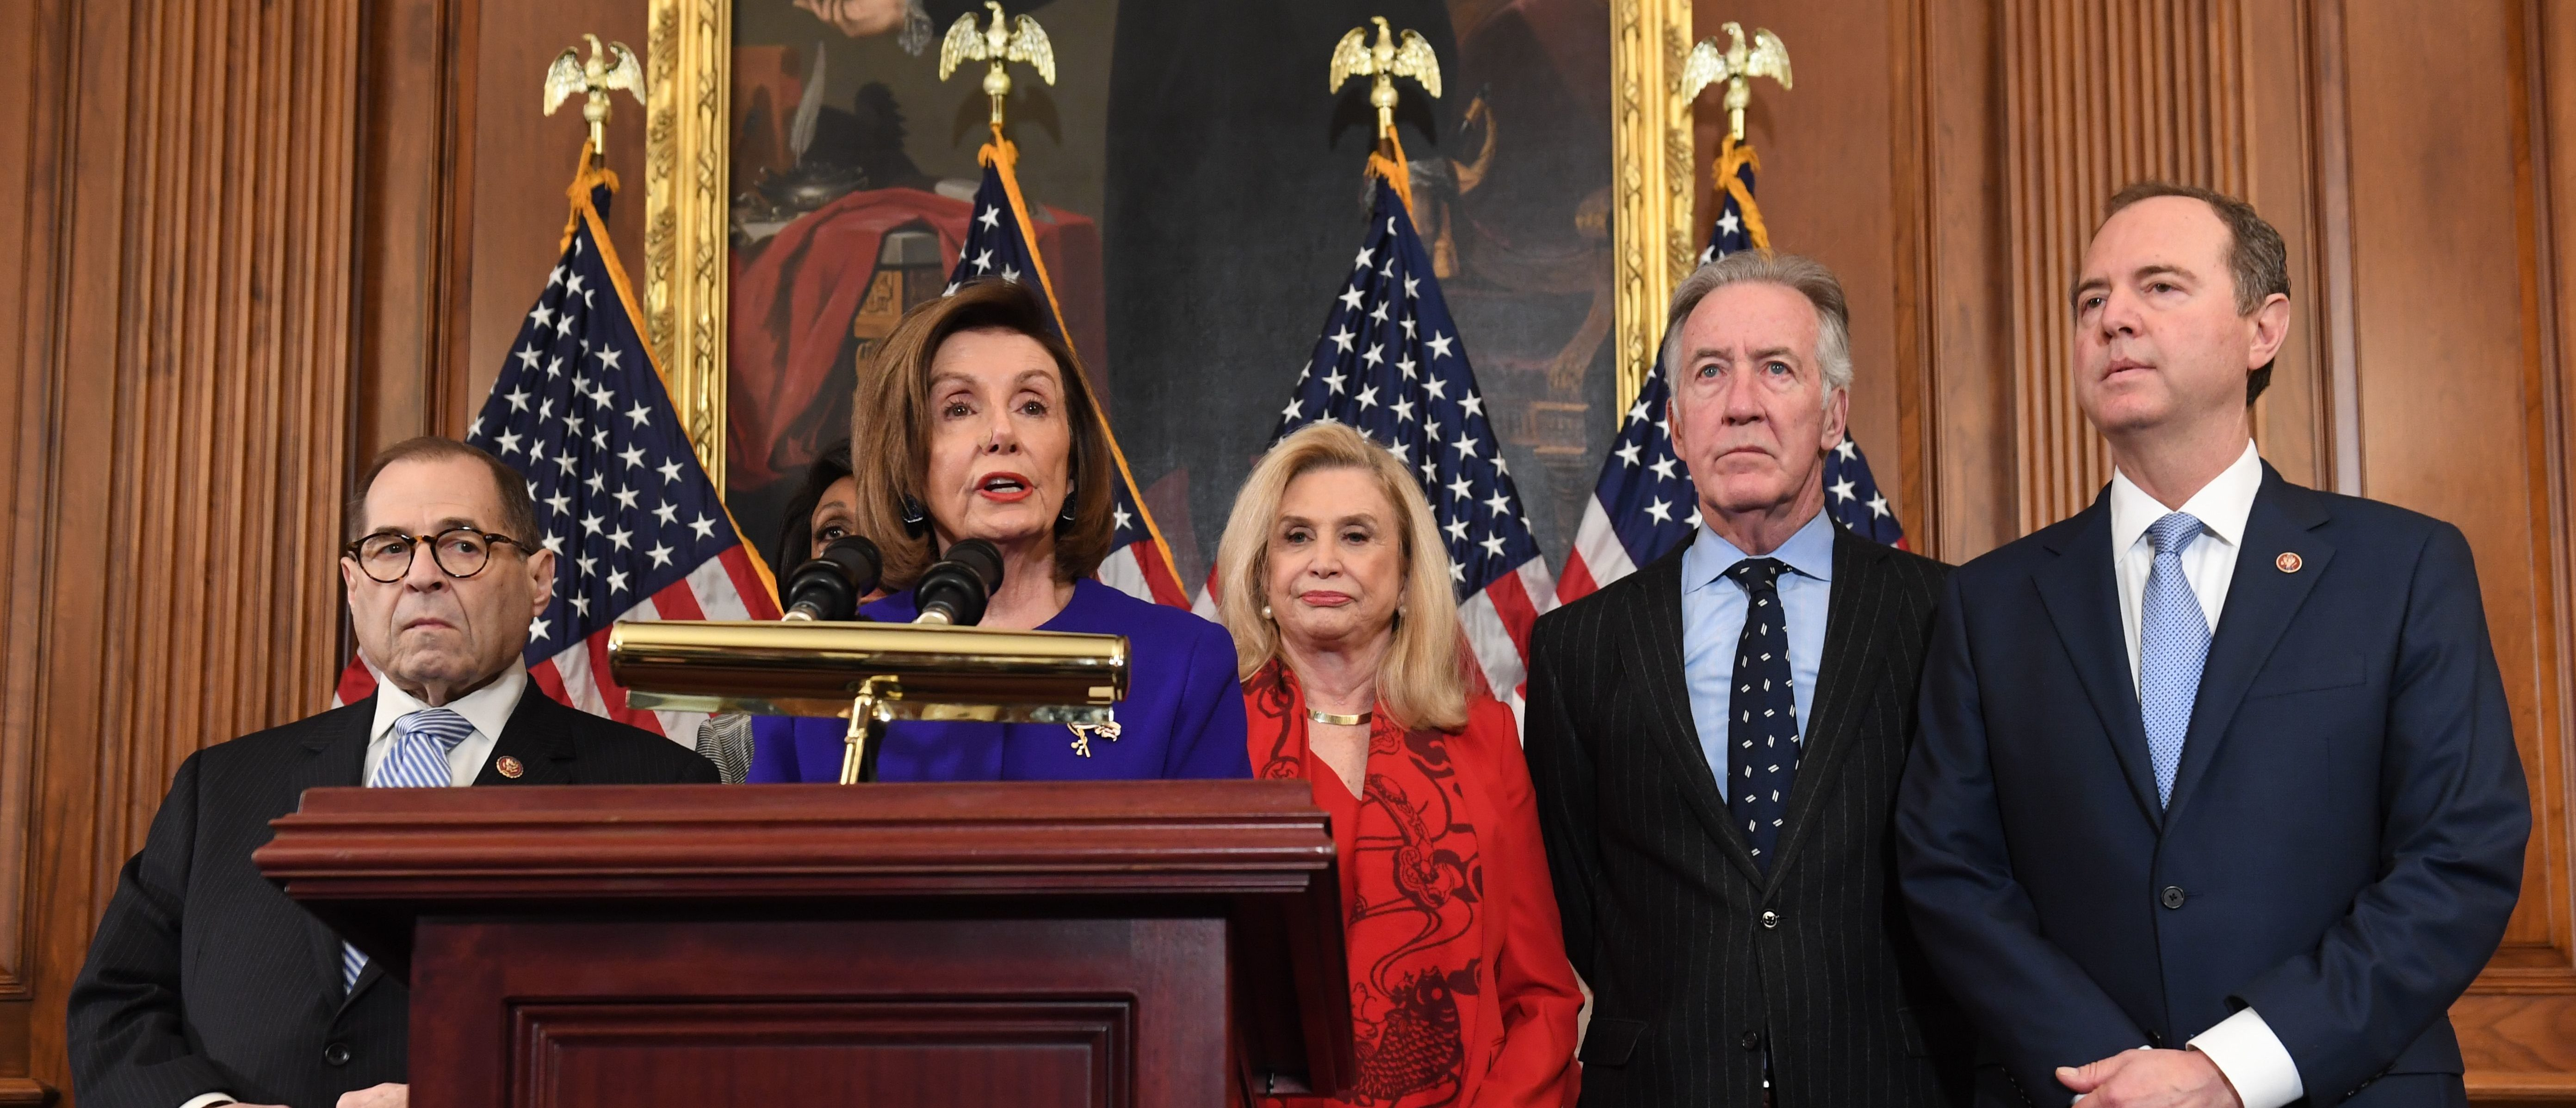 Speaker of the House Nancy Pelosi (C), flanked by House Permanent Select Committee on Intelligence Chairman Adam Schiff (R)(D-CA), House Judiciary Chairman Jerry Nadler (L) (D-NY), House Foreign Affairs Committee Chairman Eliot Engel (2ndR) (D-NY), House Financial Services Committee Chairwoman Maxine Waters (background)(D-CA), and House Committee on Oversight and Reform Chairwoman Carolyn Maloney (2nd R) (D-NY), speaks as Democrats announced articles of impeachment against US President Donald Trump during a press conference at the US Capitol in Washington, DC, December 10, 2019 listing abuse of power and obstruction of Congress. (Photo by SAUL LOEB / AFP) (Photo by SAUL LOEB/AFP via Getty Images)